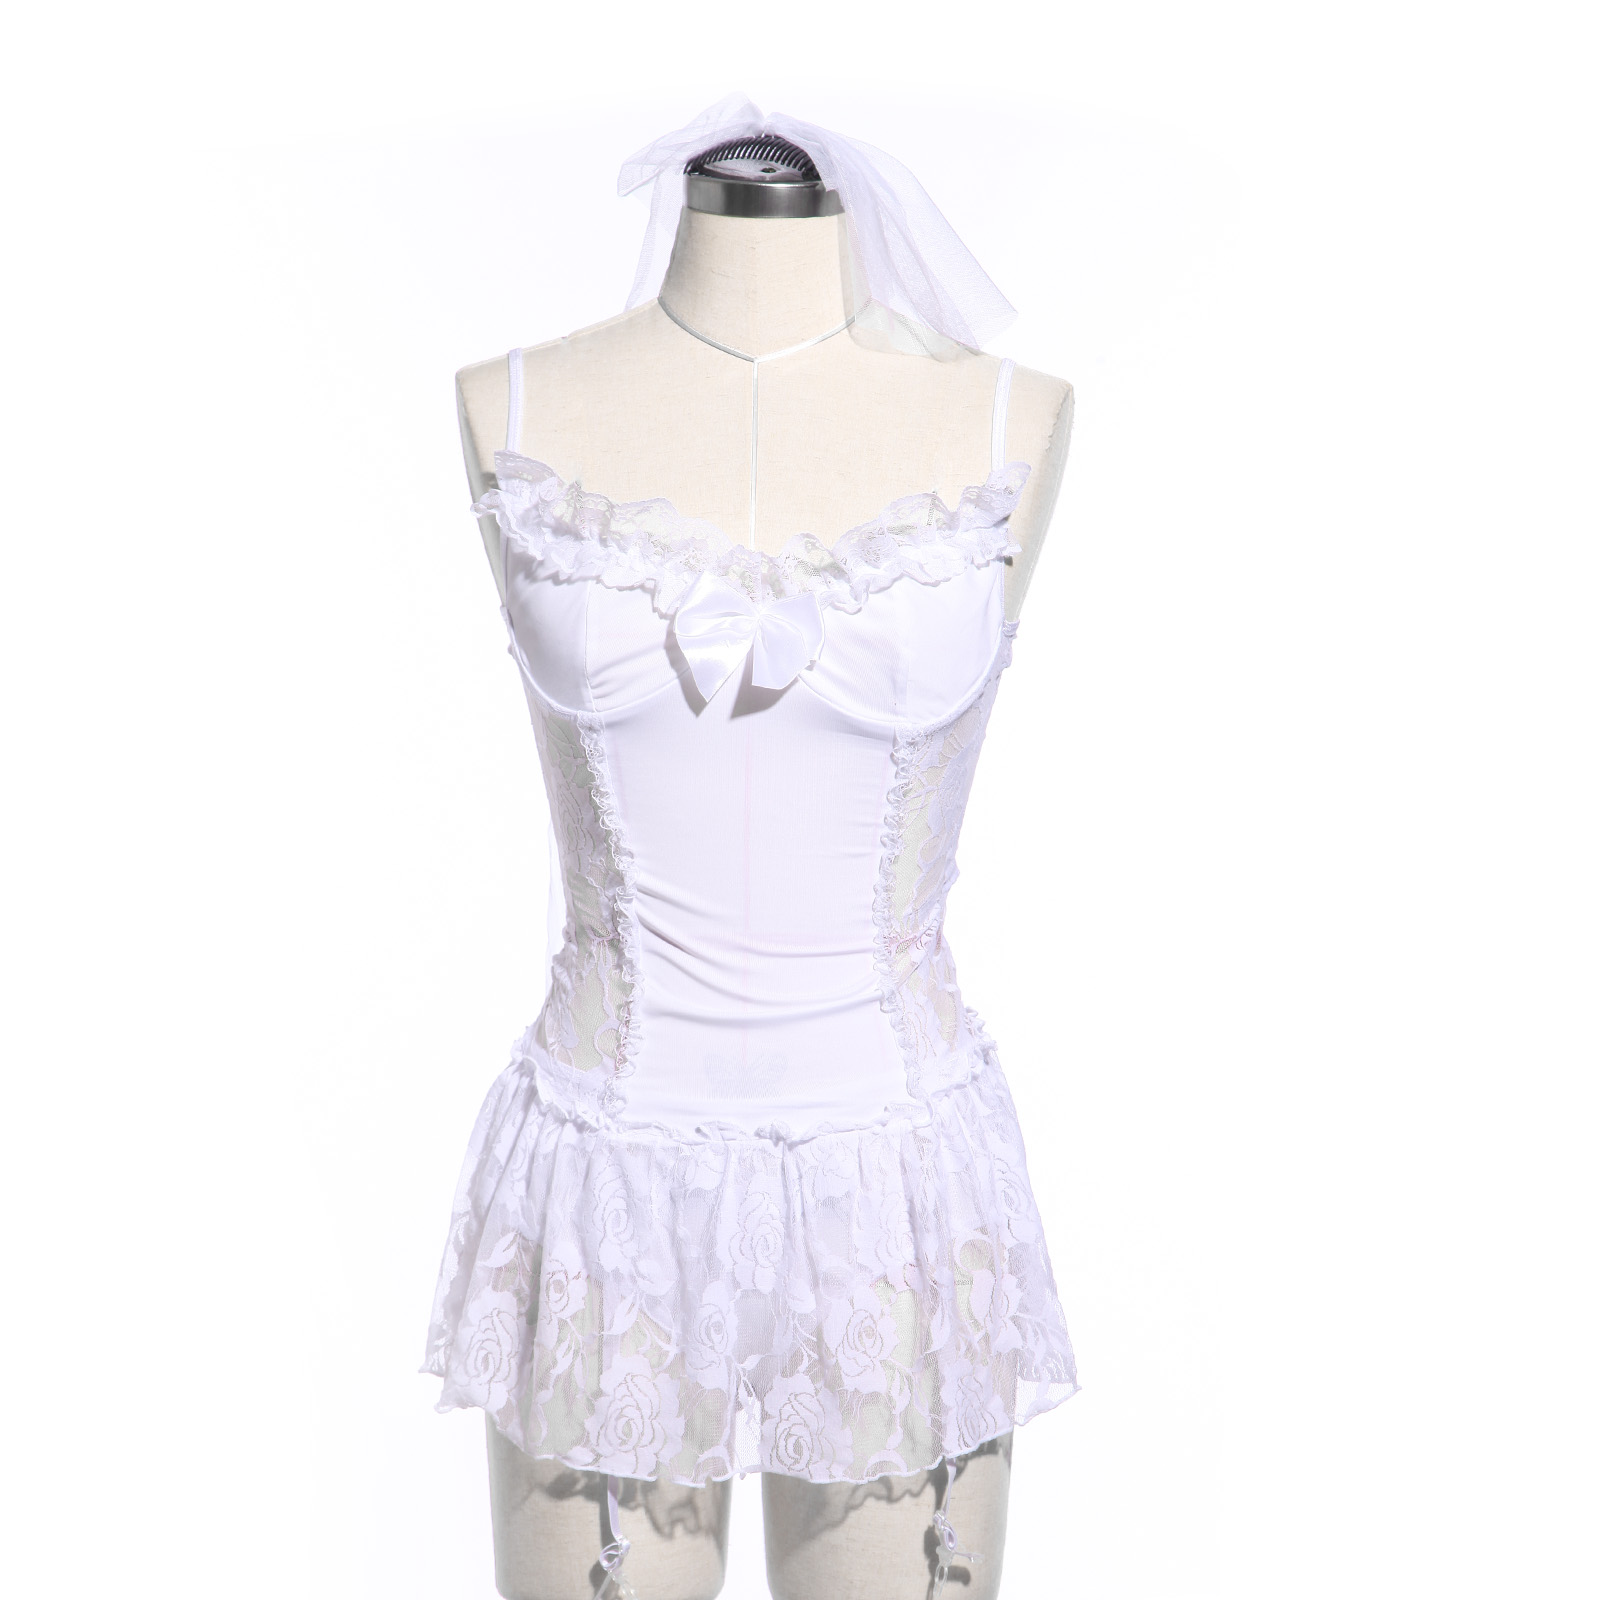 Sexy bride bridal bridesmaid wedding costume hen night for Sexy wedding dress costume